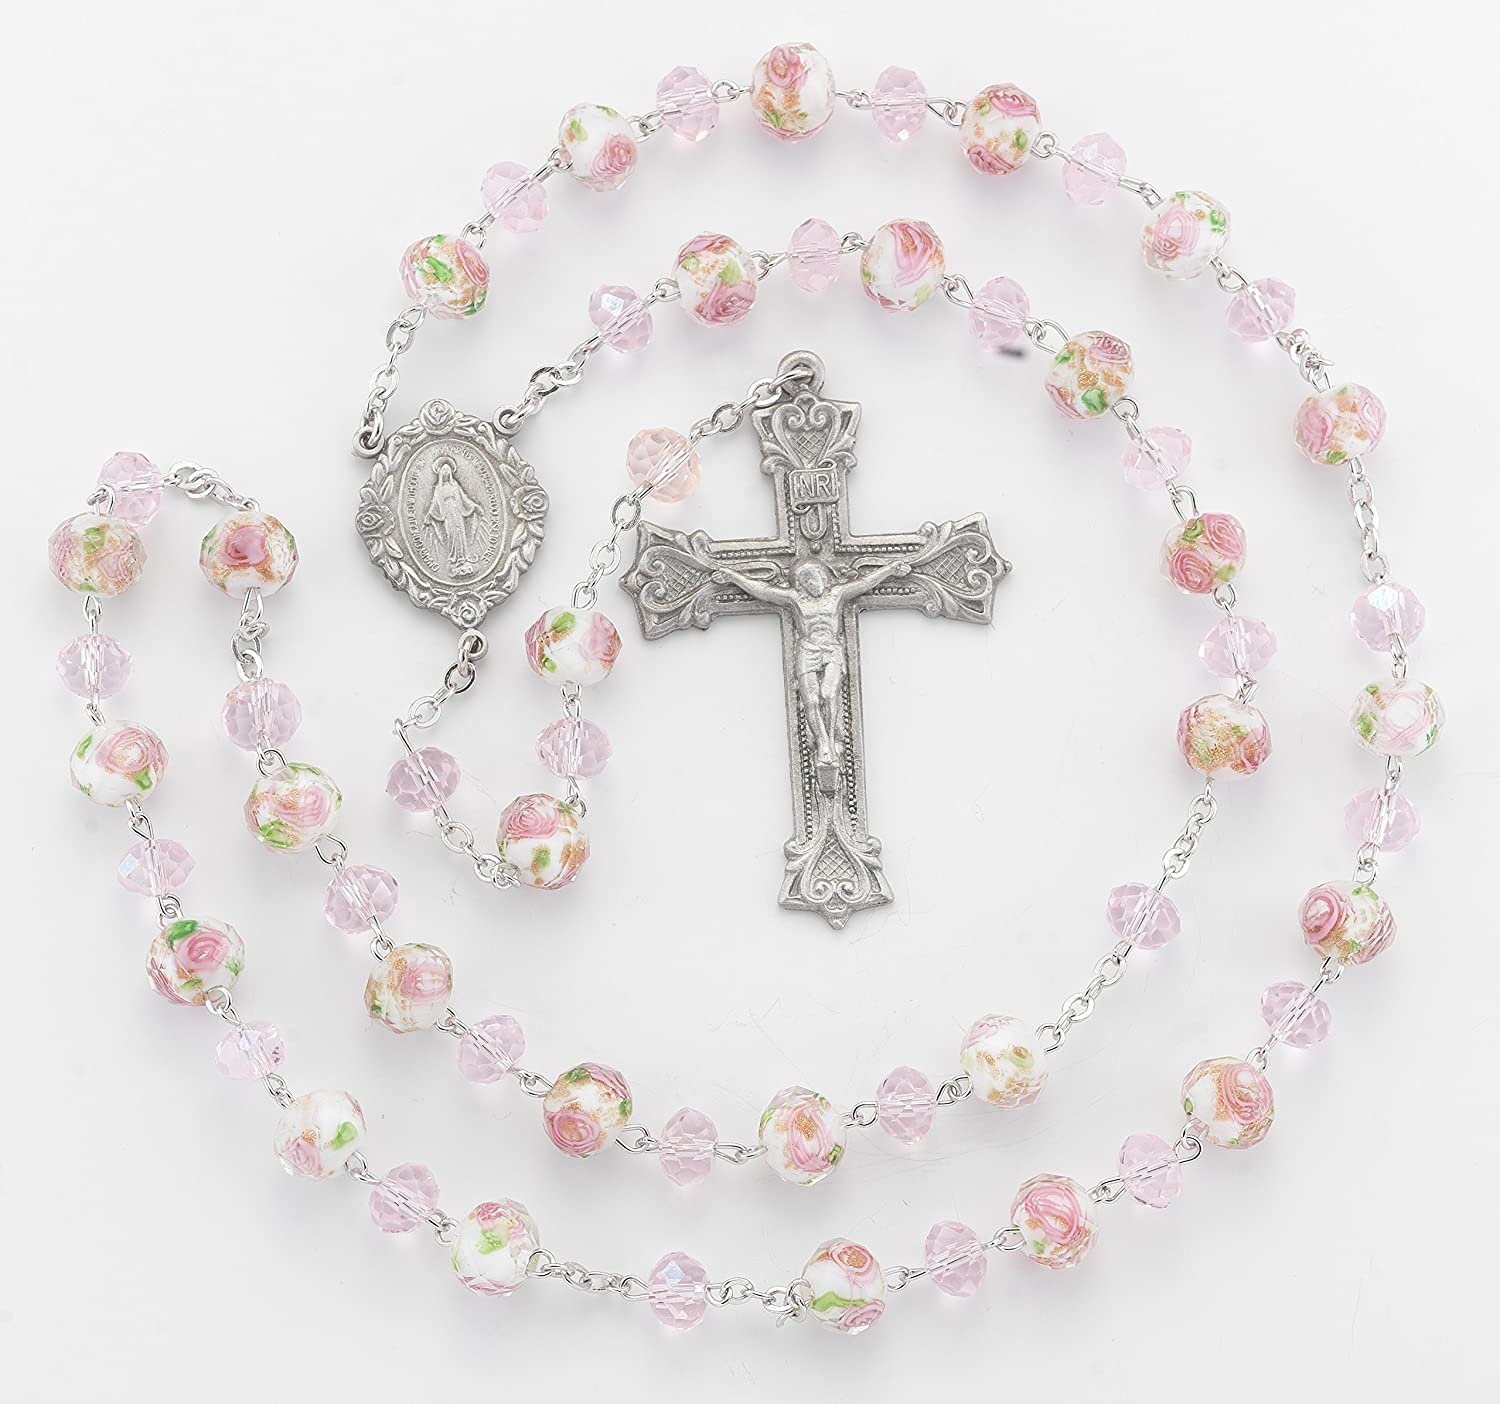 (5 7 18) BERTOF BT-PR-110 Pewter pinkry White Pink Glass Flower Beads Beads WITH 100% Pewter Center and Crucifix Hand Made USA Copyrighted Paul Herbert Blessing PEWTARA Series